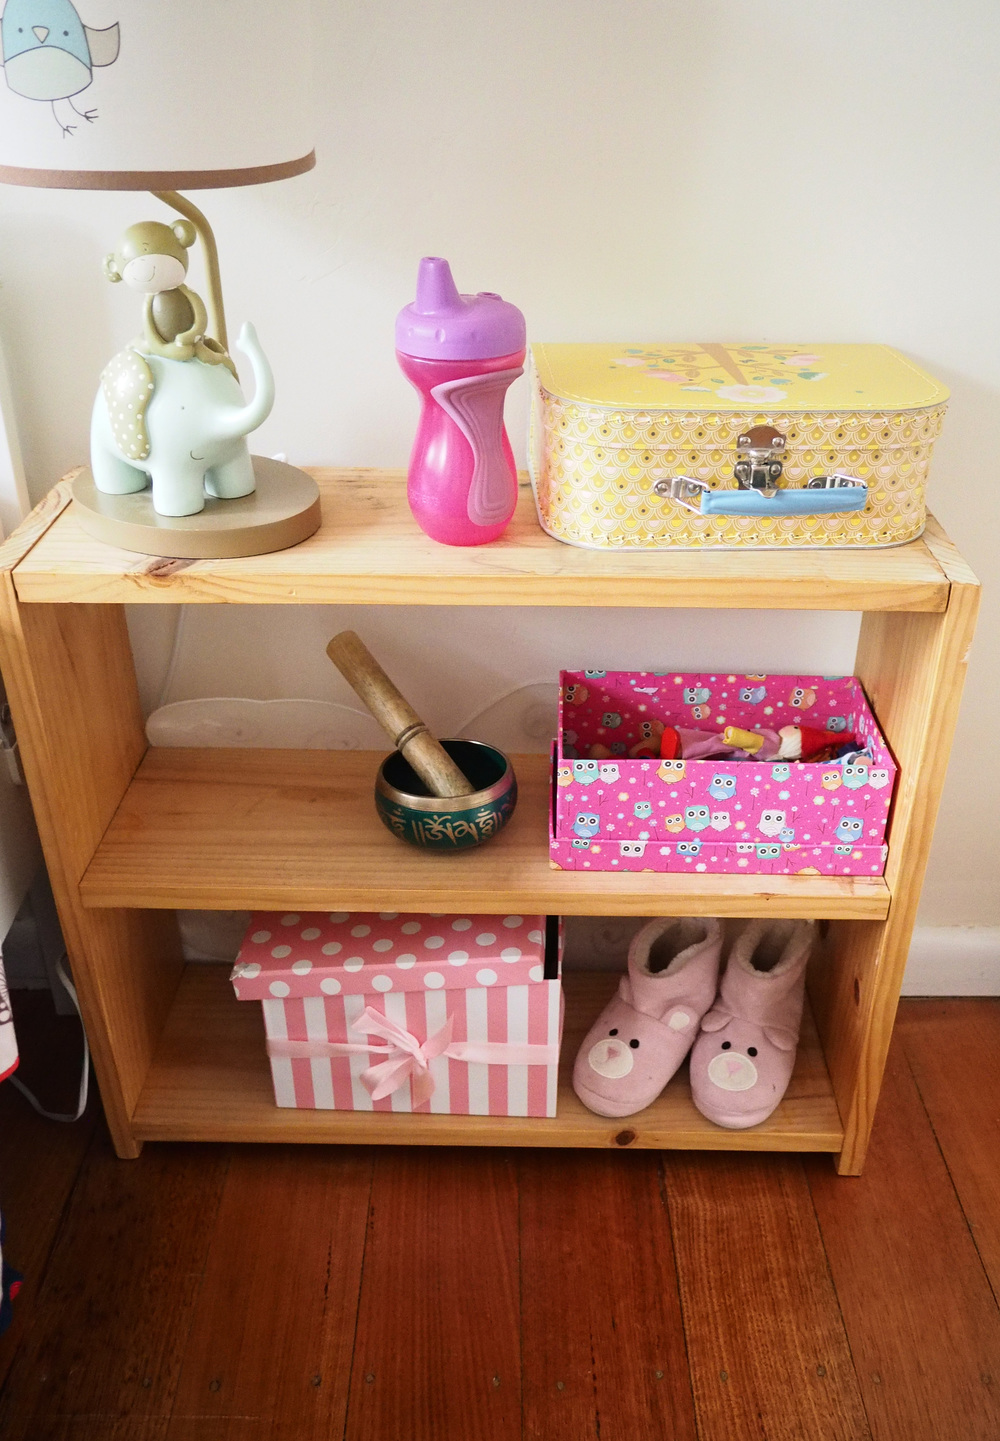 Making over an old shoe rack into a bedside table